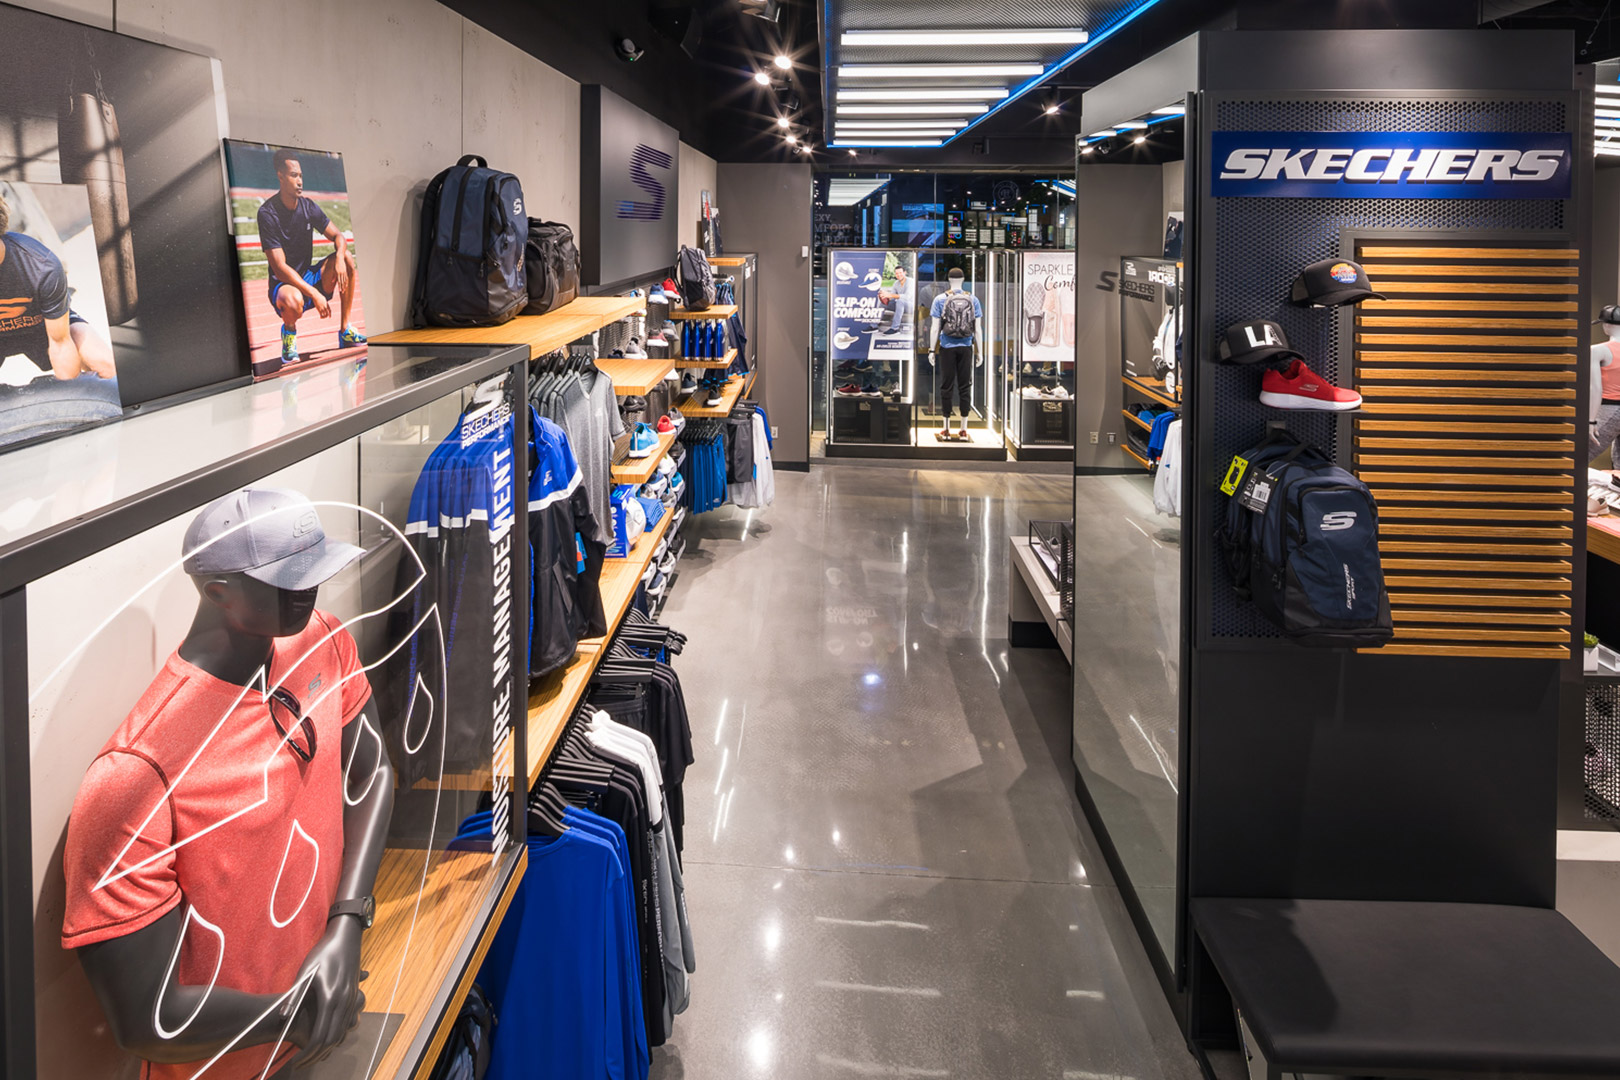 Skechers Santa Monica Retail Space